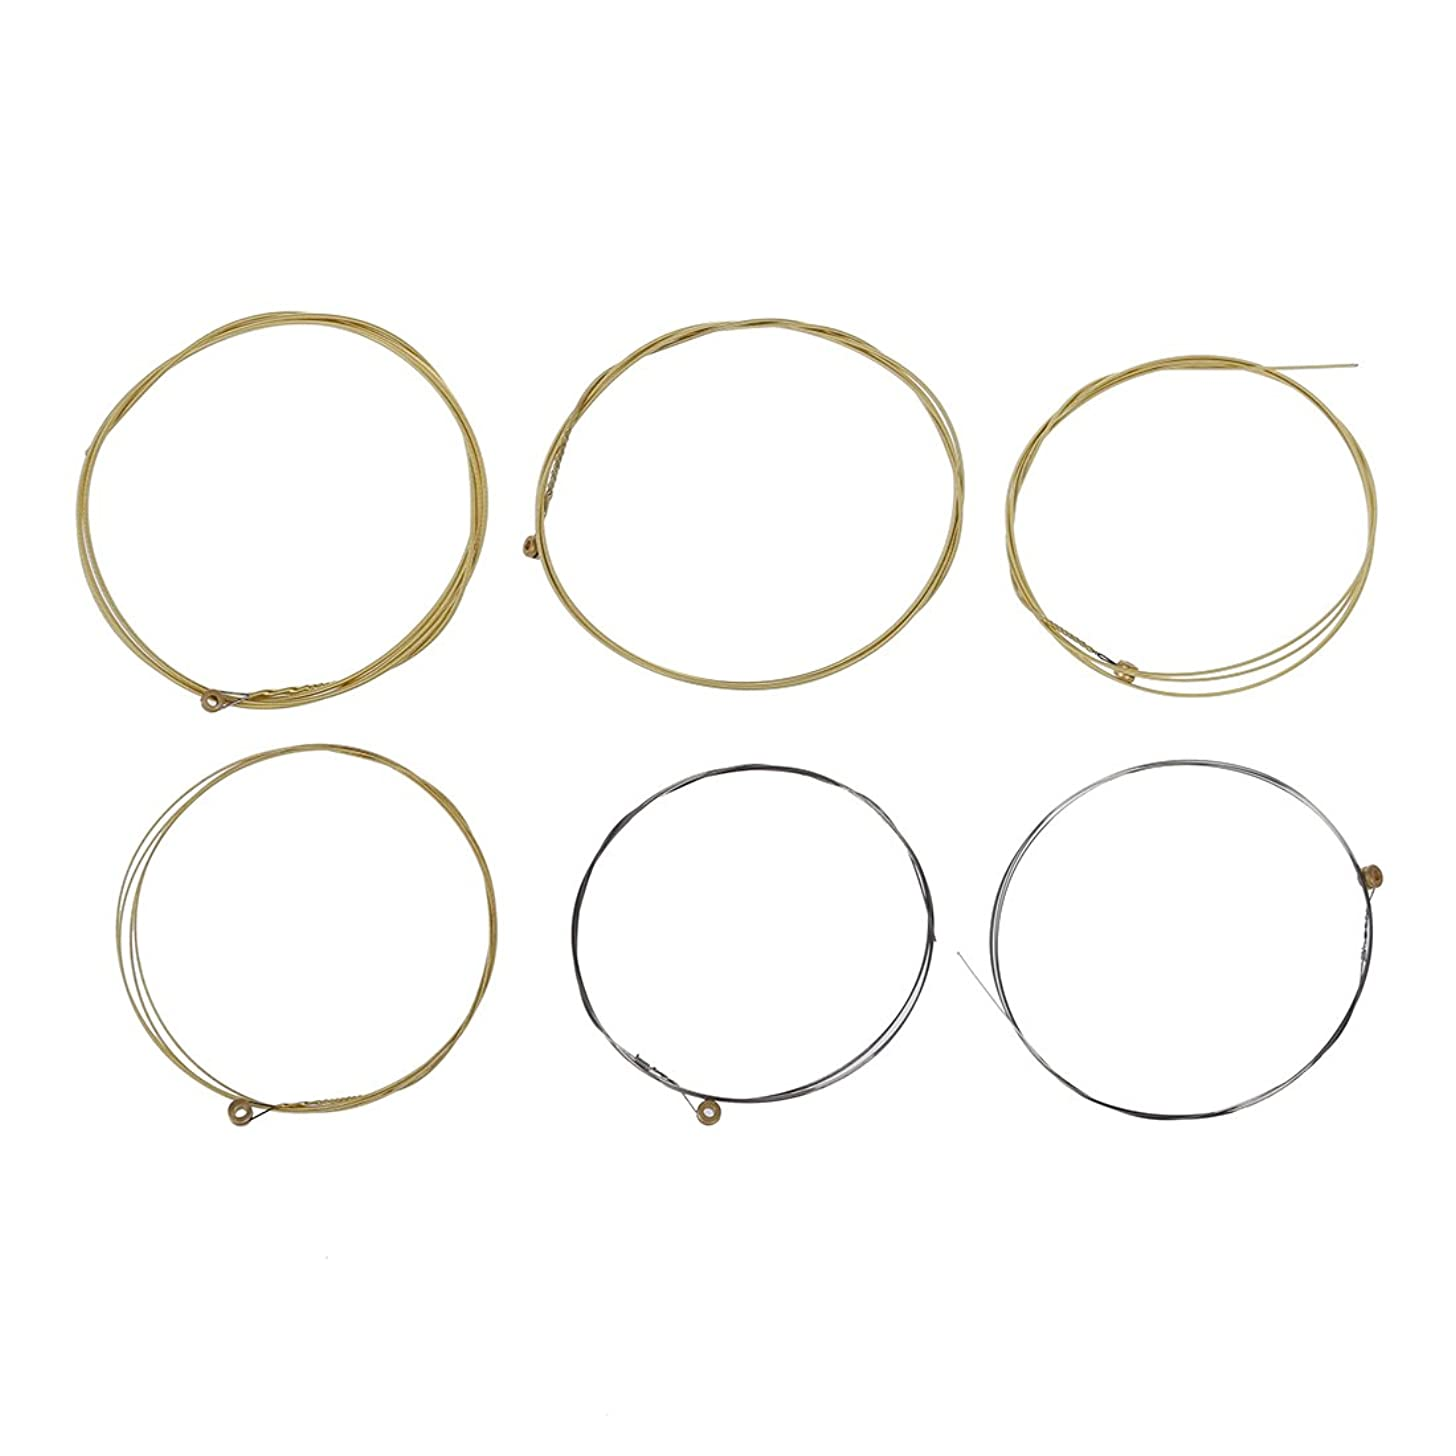 SODIAL(R) A set of 6 strings for acoustic guitar.